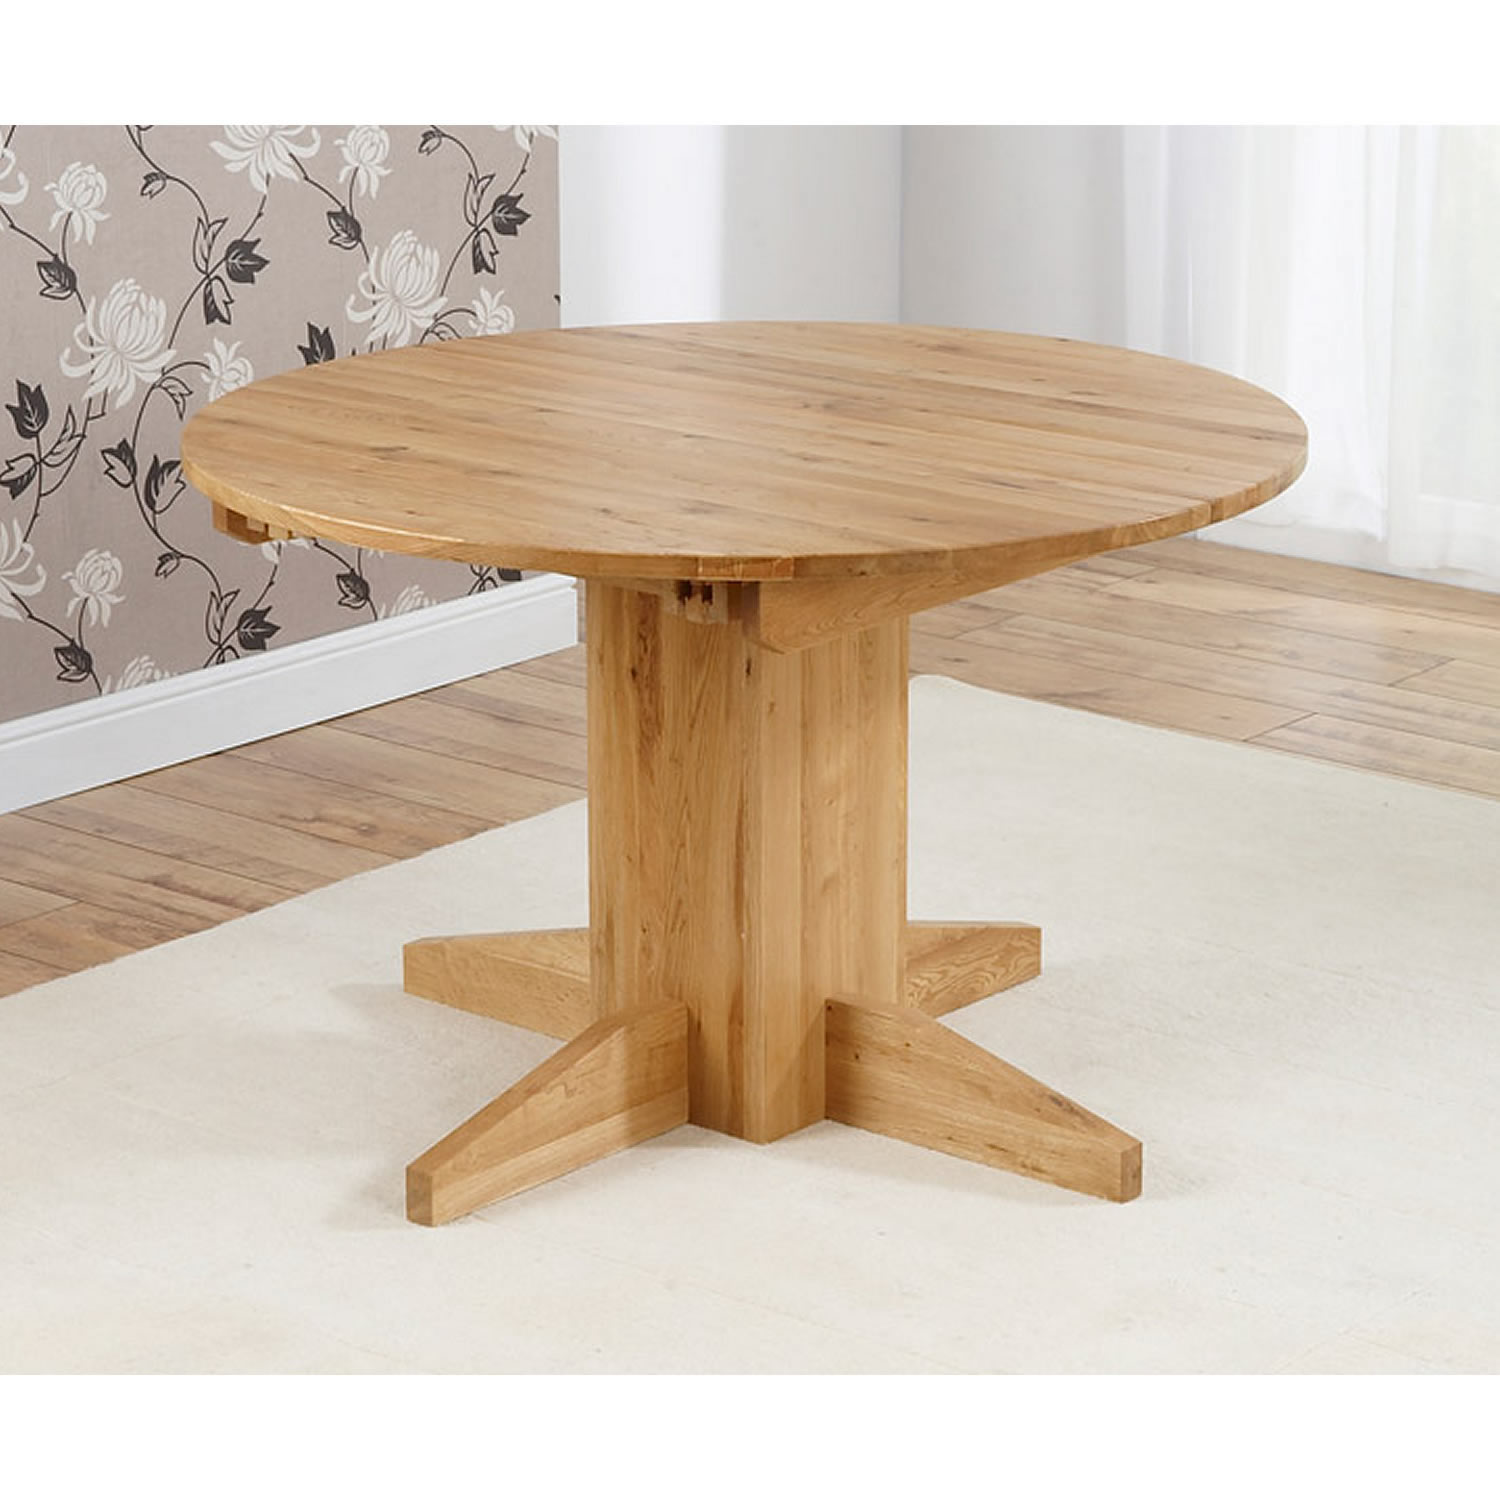 Monte Carlo Round Solid Oak Dining Table Extends to 160 cm